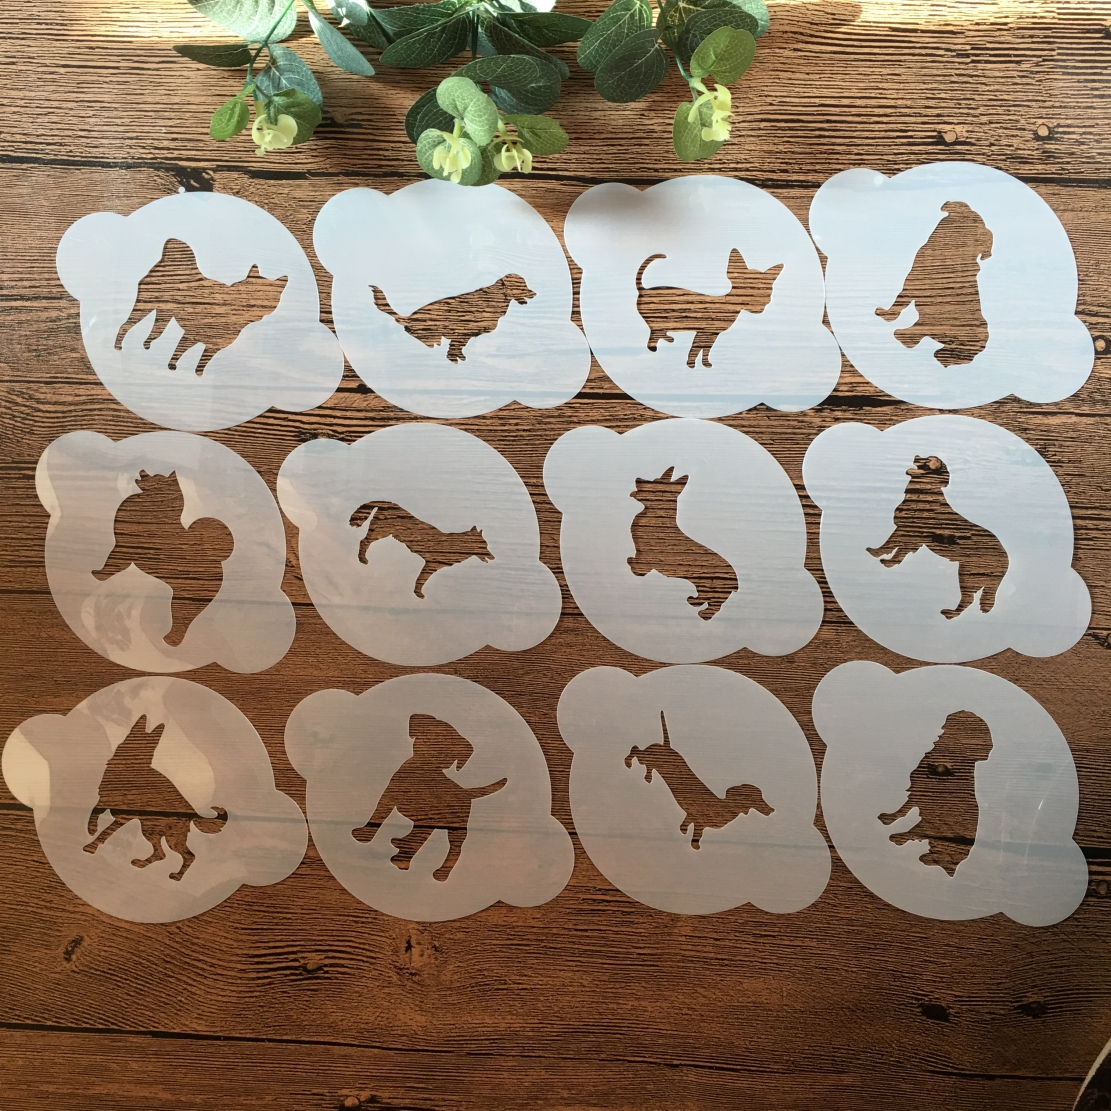 12Pcs 13*10cm Pet Dog DIY Layering Stencils Painting Scrapbooking Stamping Embossing Album Paper Card Template